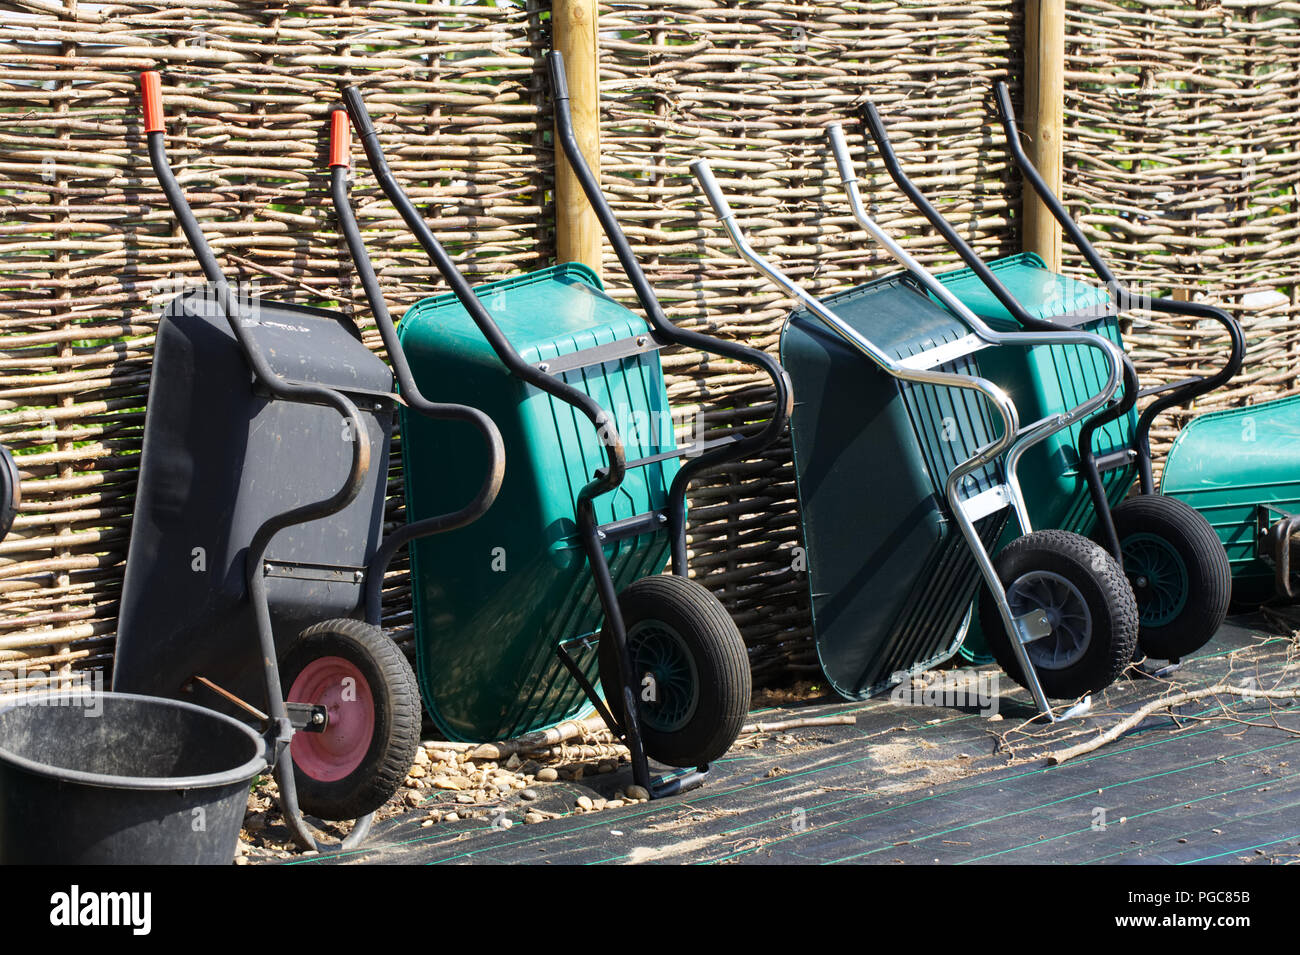 Wheelbarrows lined up against a fence at RHS Wisley allotment gardens. - Stock Image